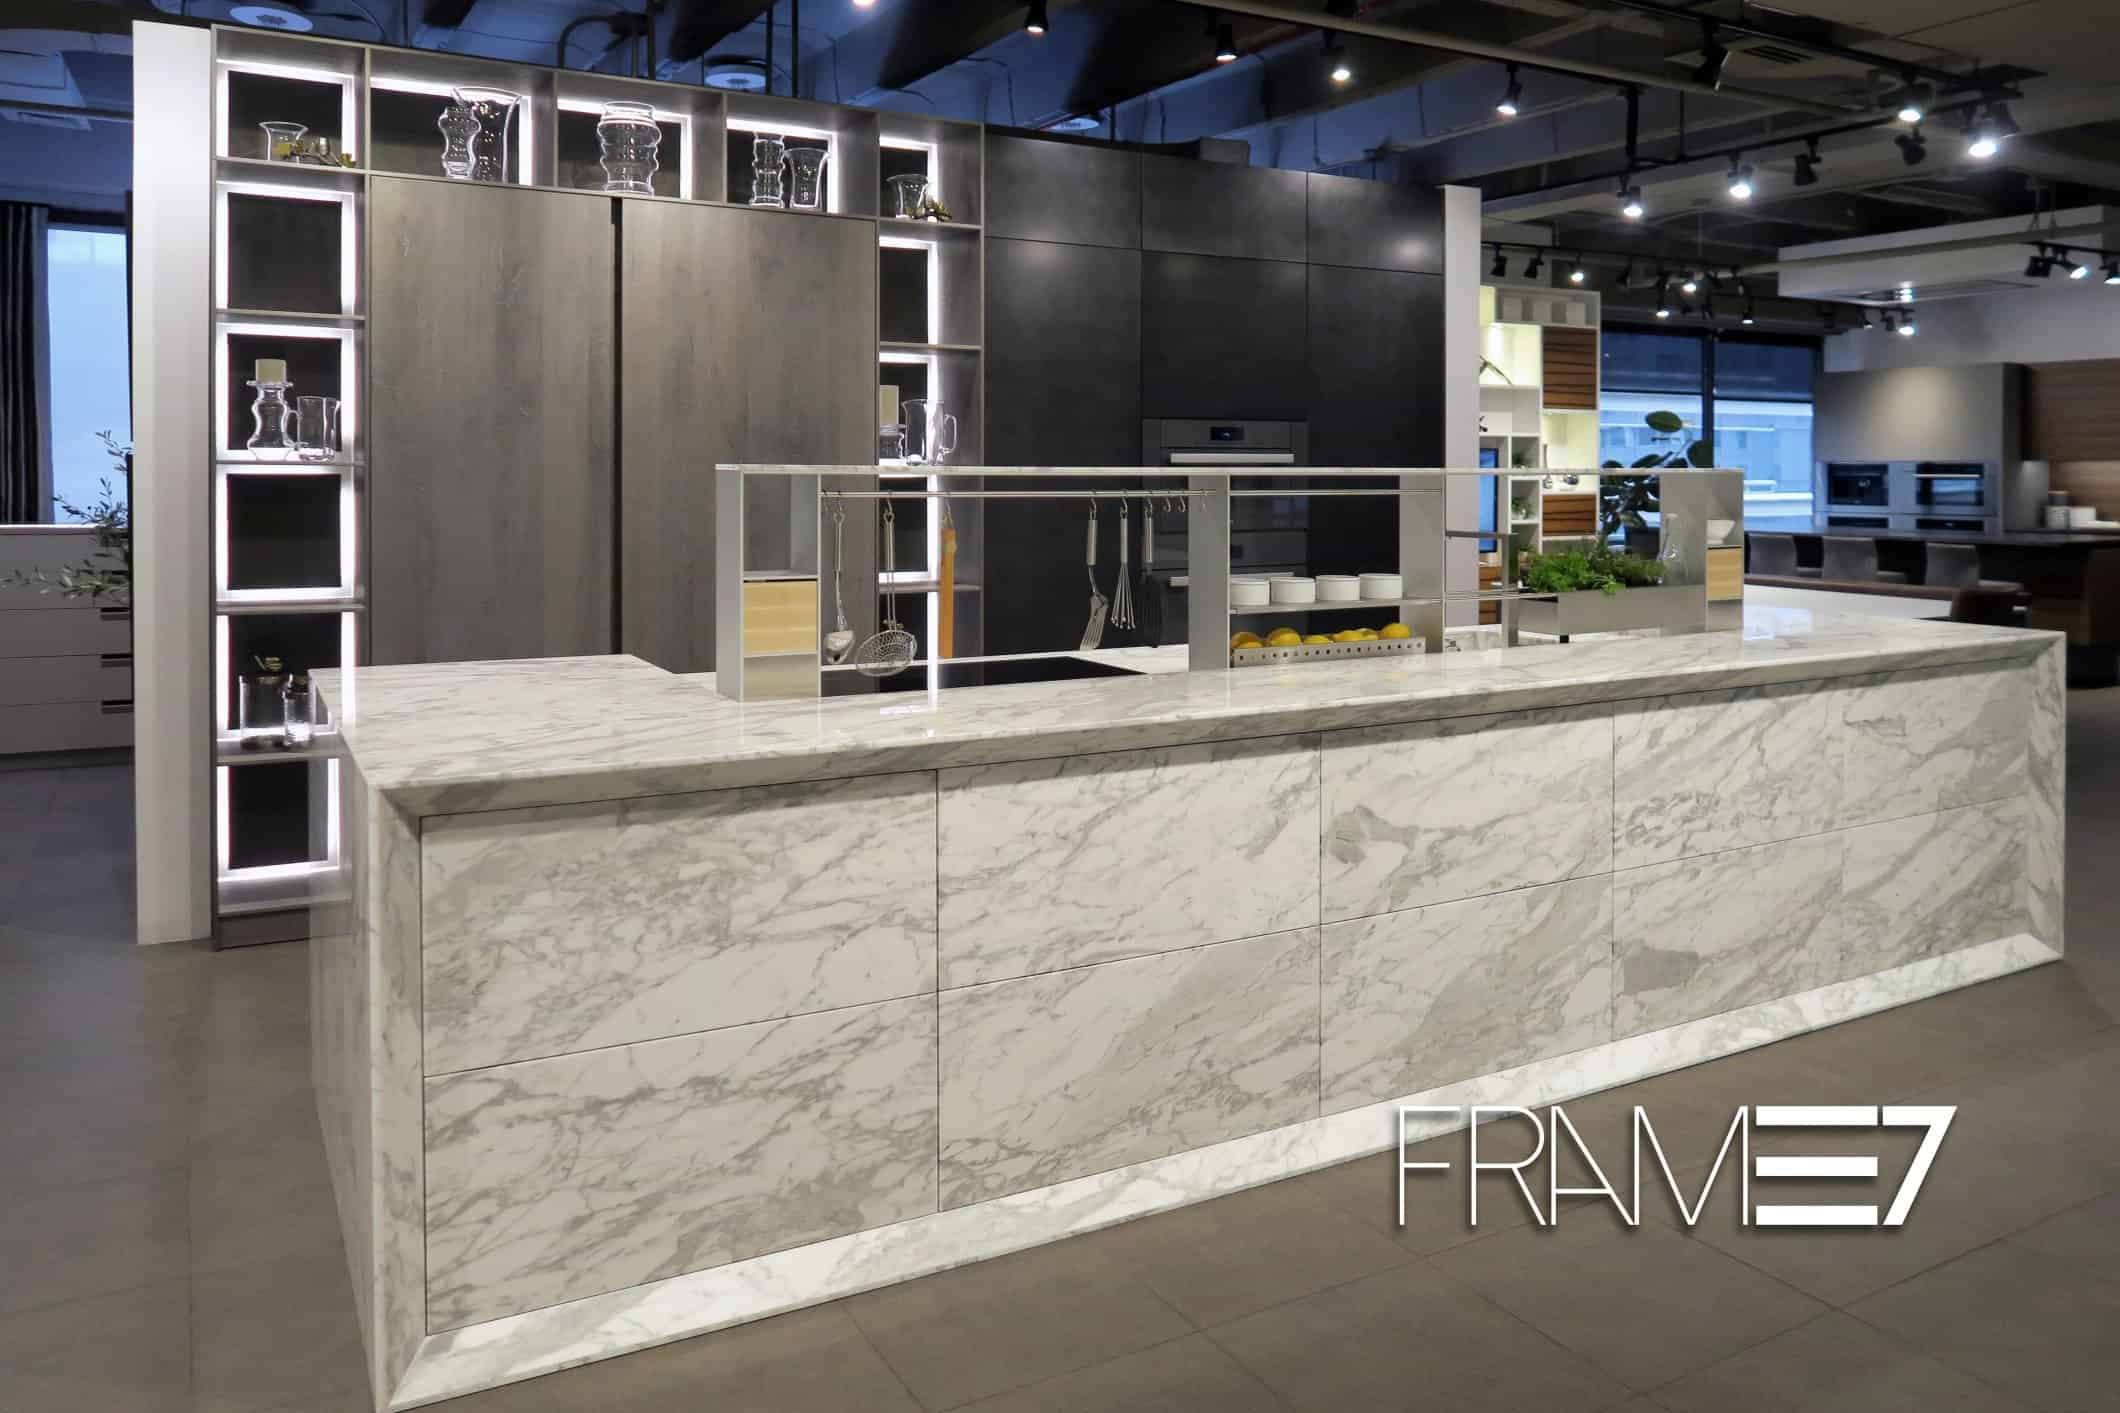 eggersmann launches FRAME7 innovation & rocks the kitchen world